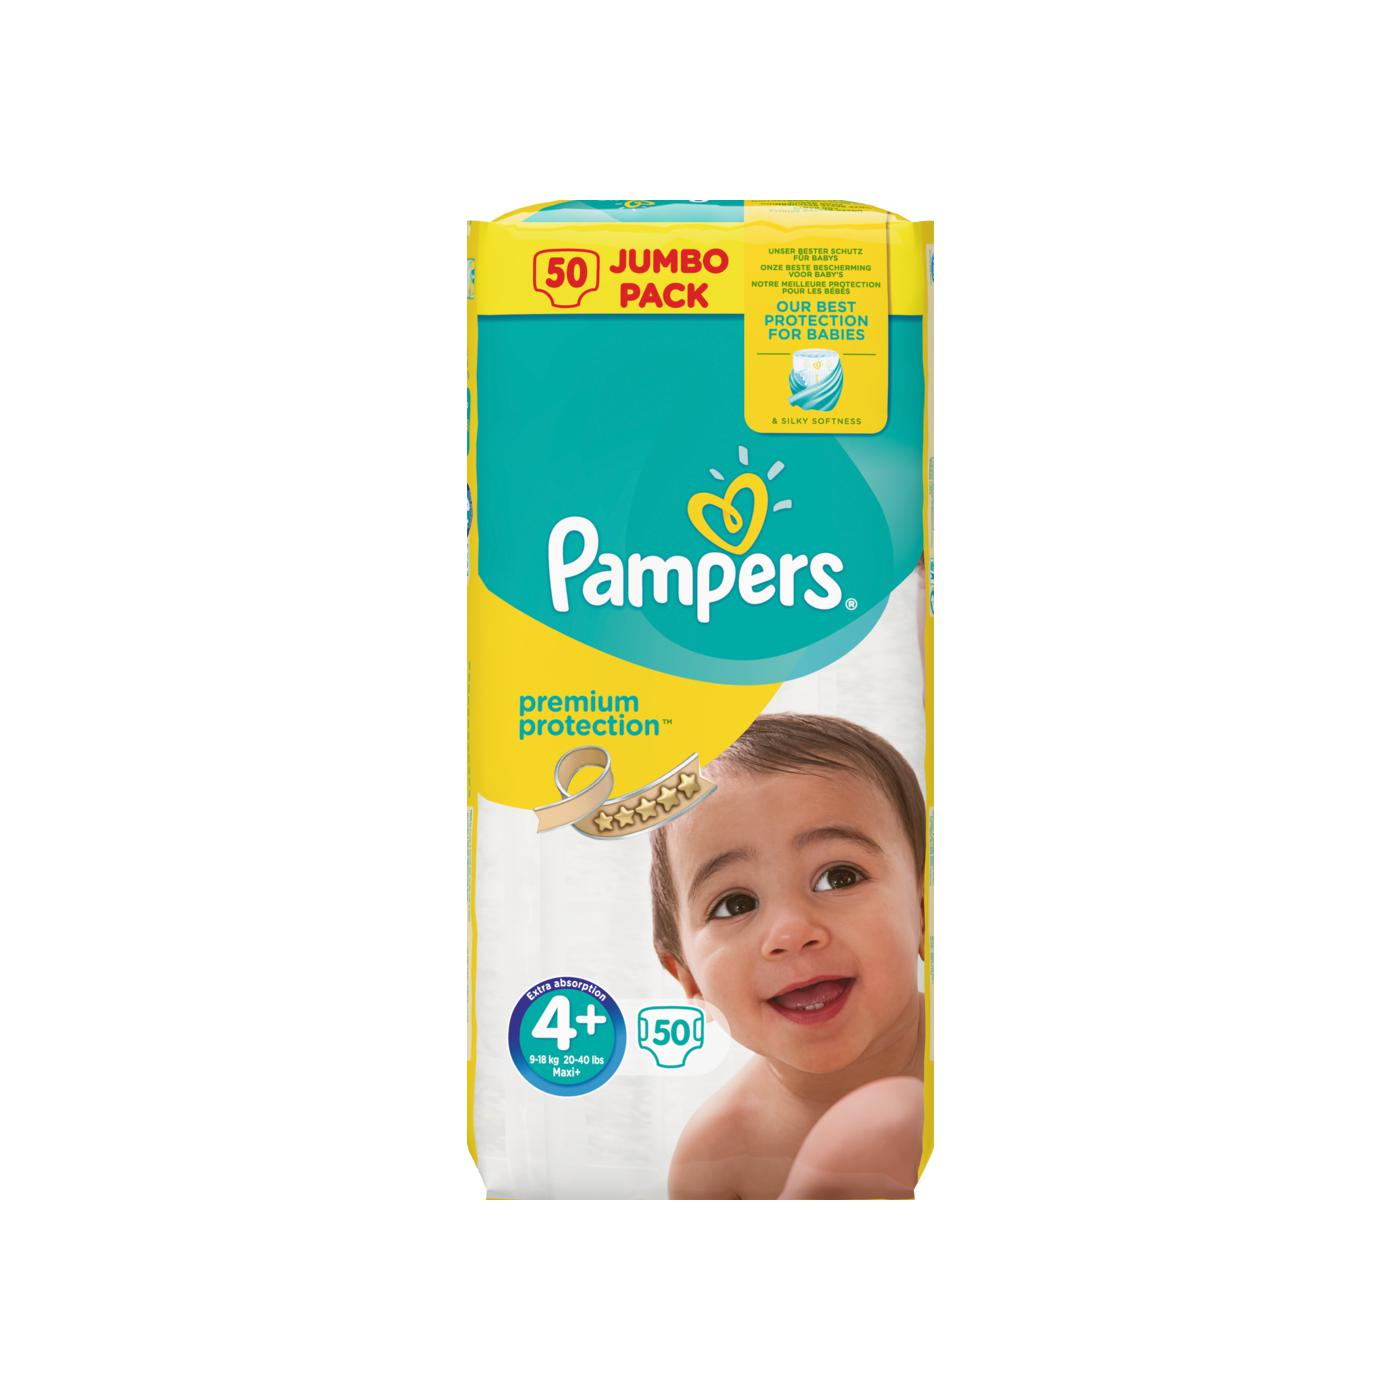 pampers windeln premium protection gr 4 9 18kg jumbo pack online g nstig kaufen. Black Bedroom Furniture Sets. Home Design Ideas